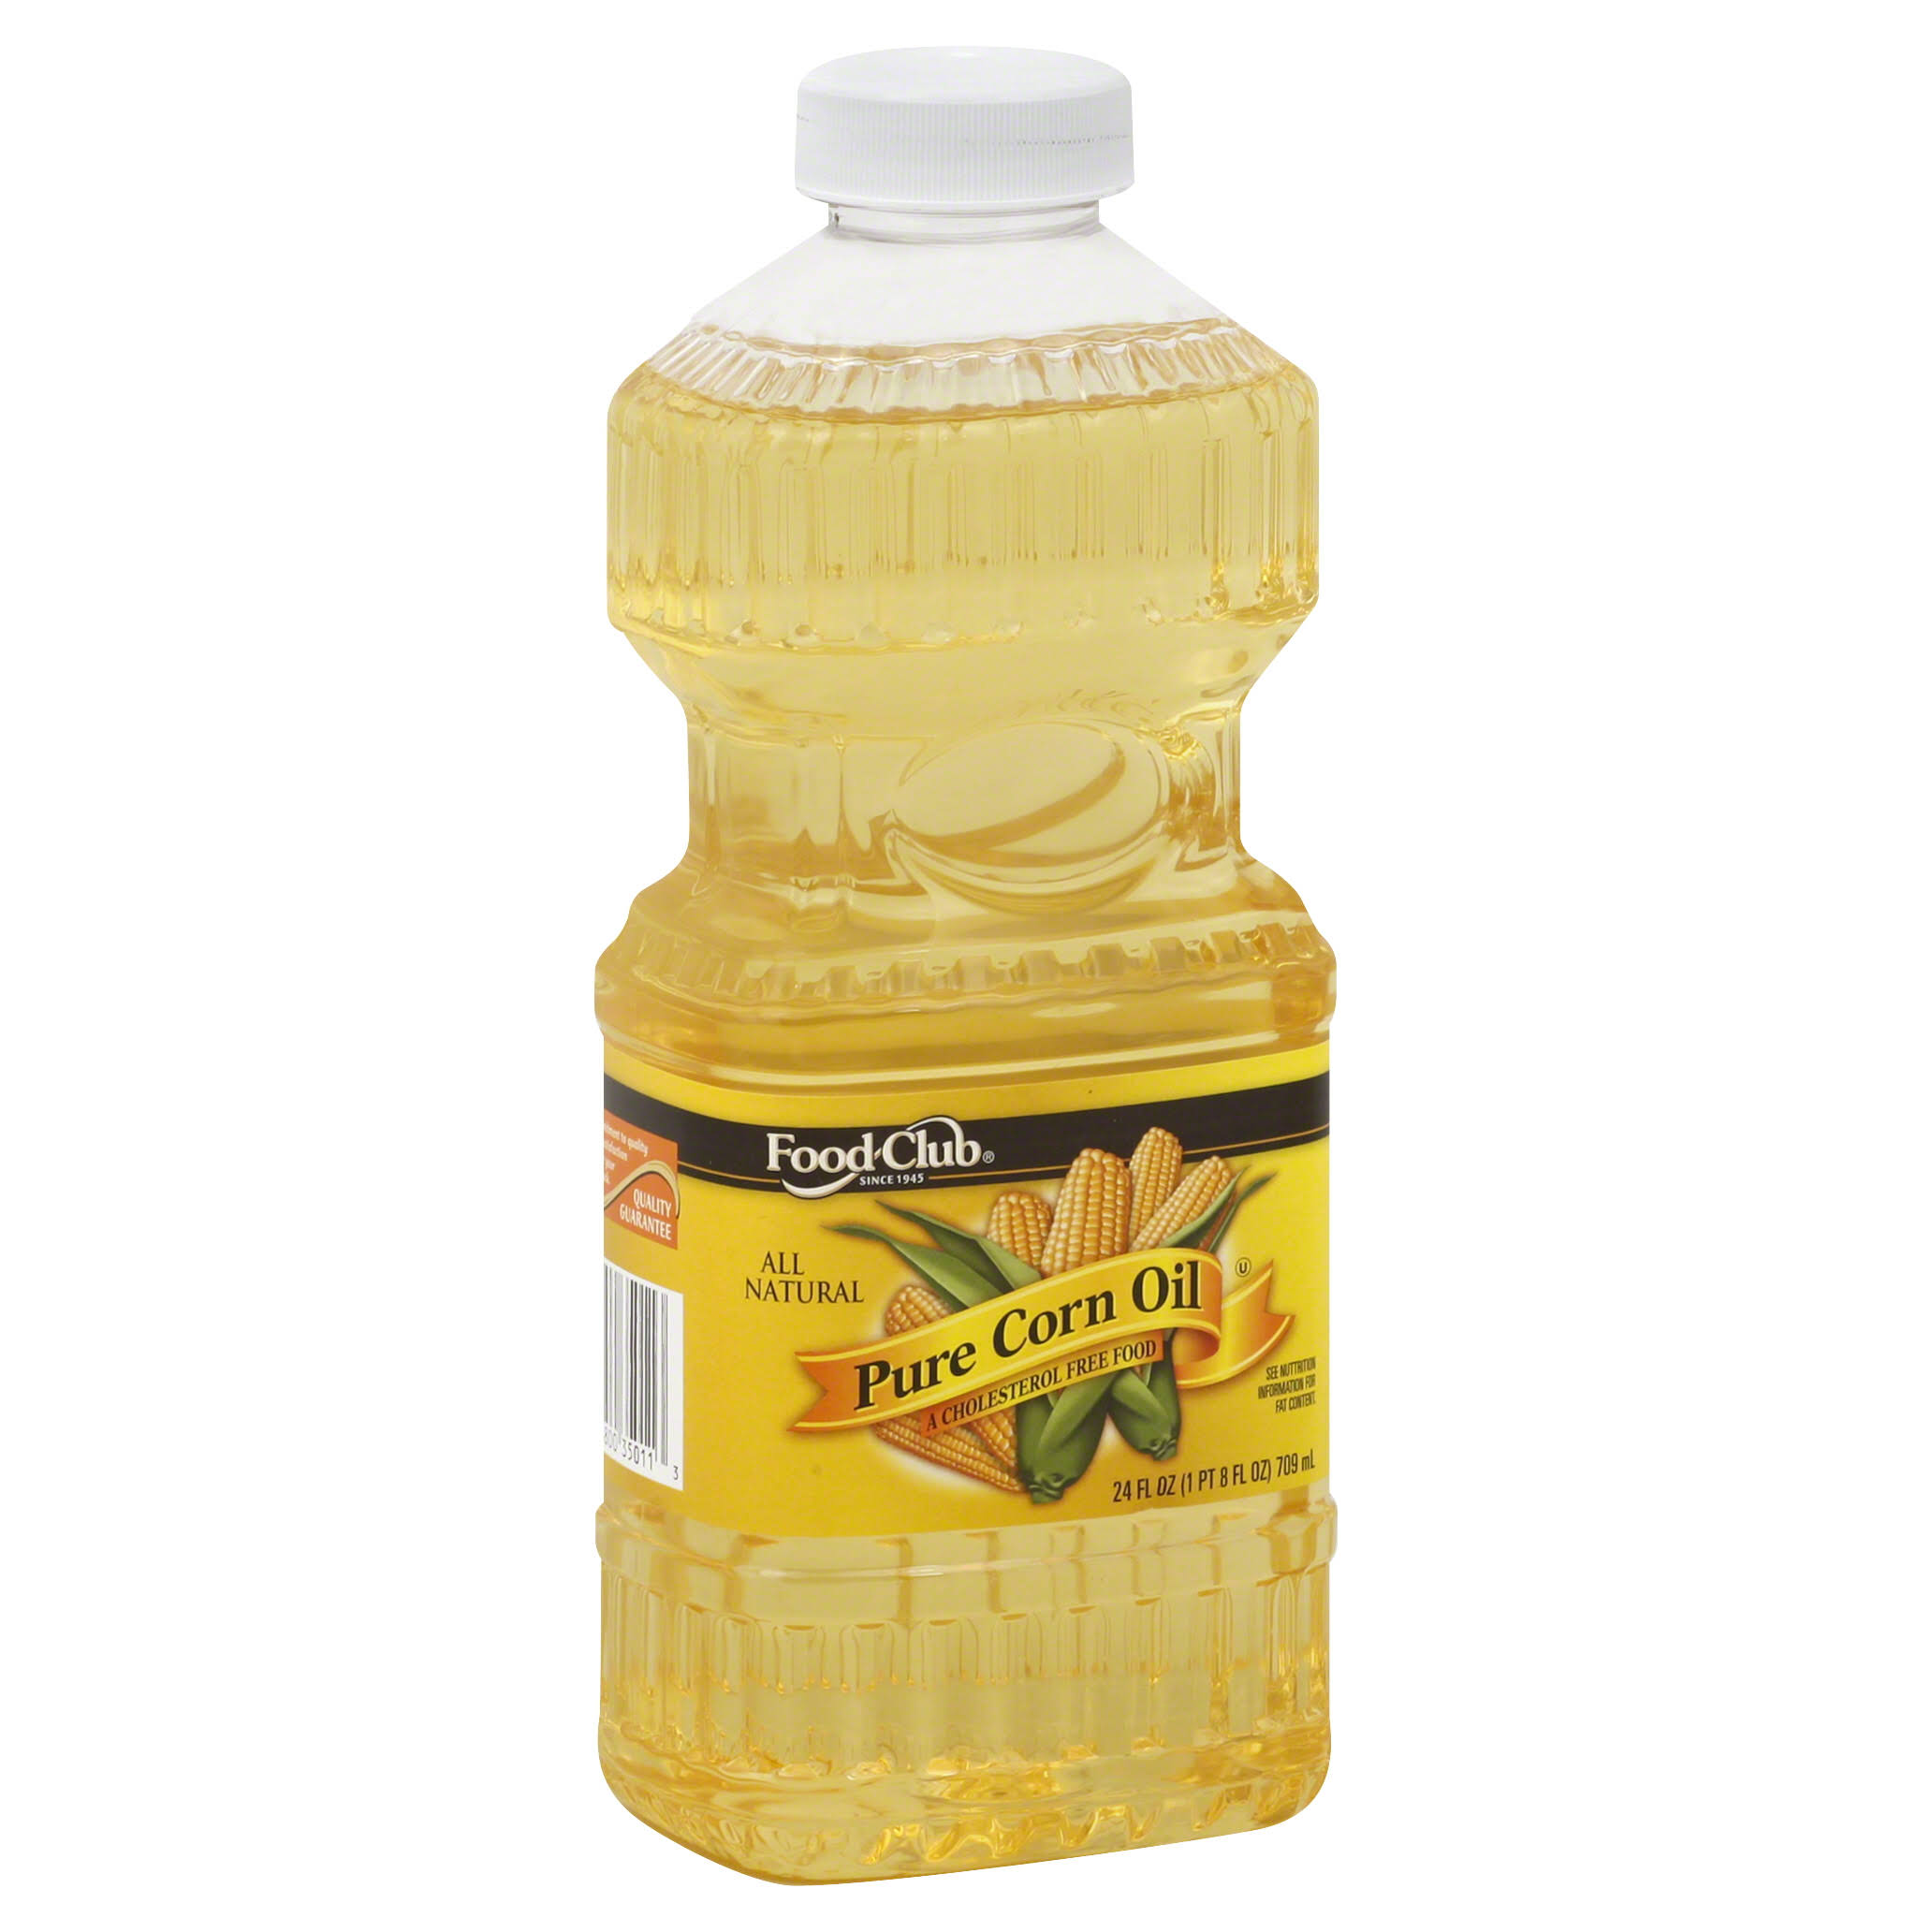 Food Club Corn Oil, Pure - 24 fl oz